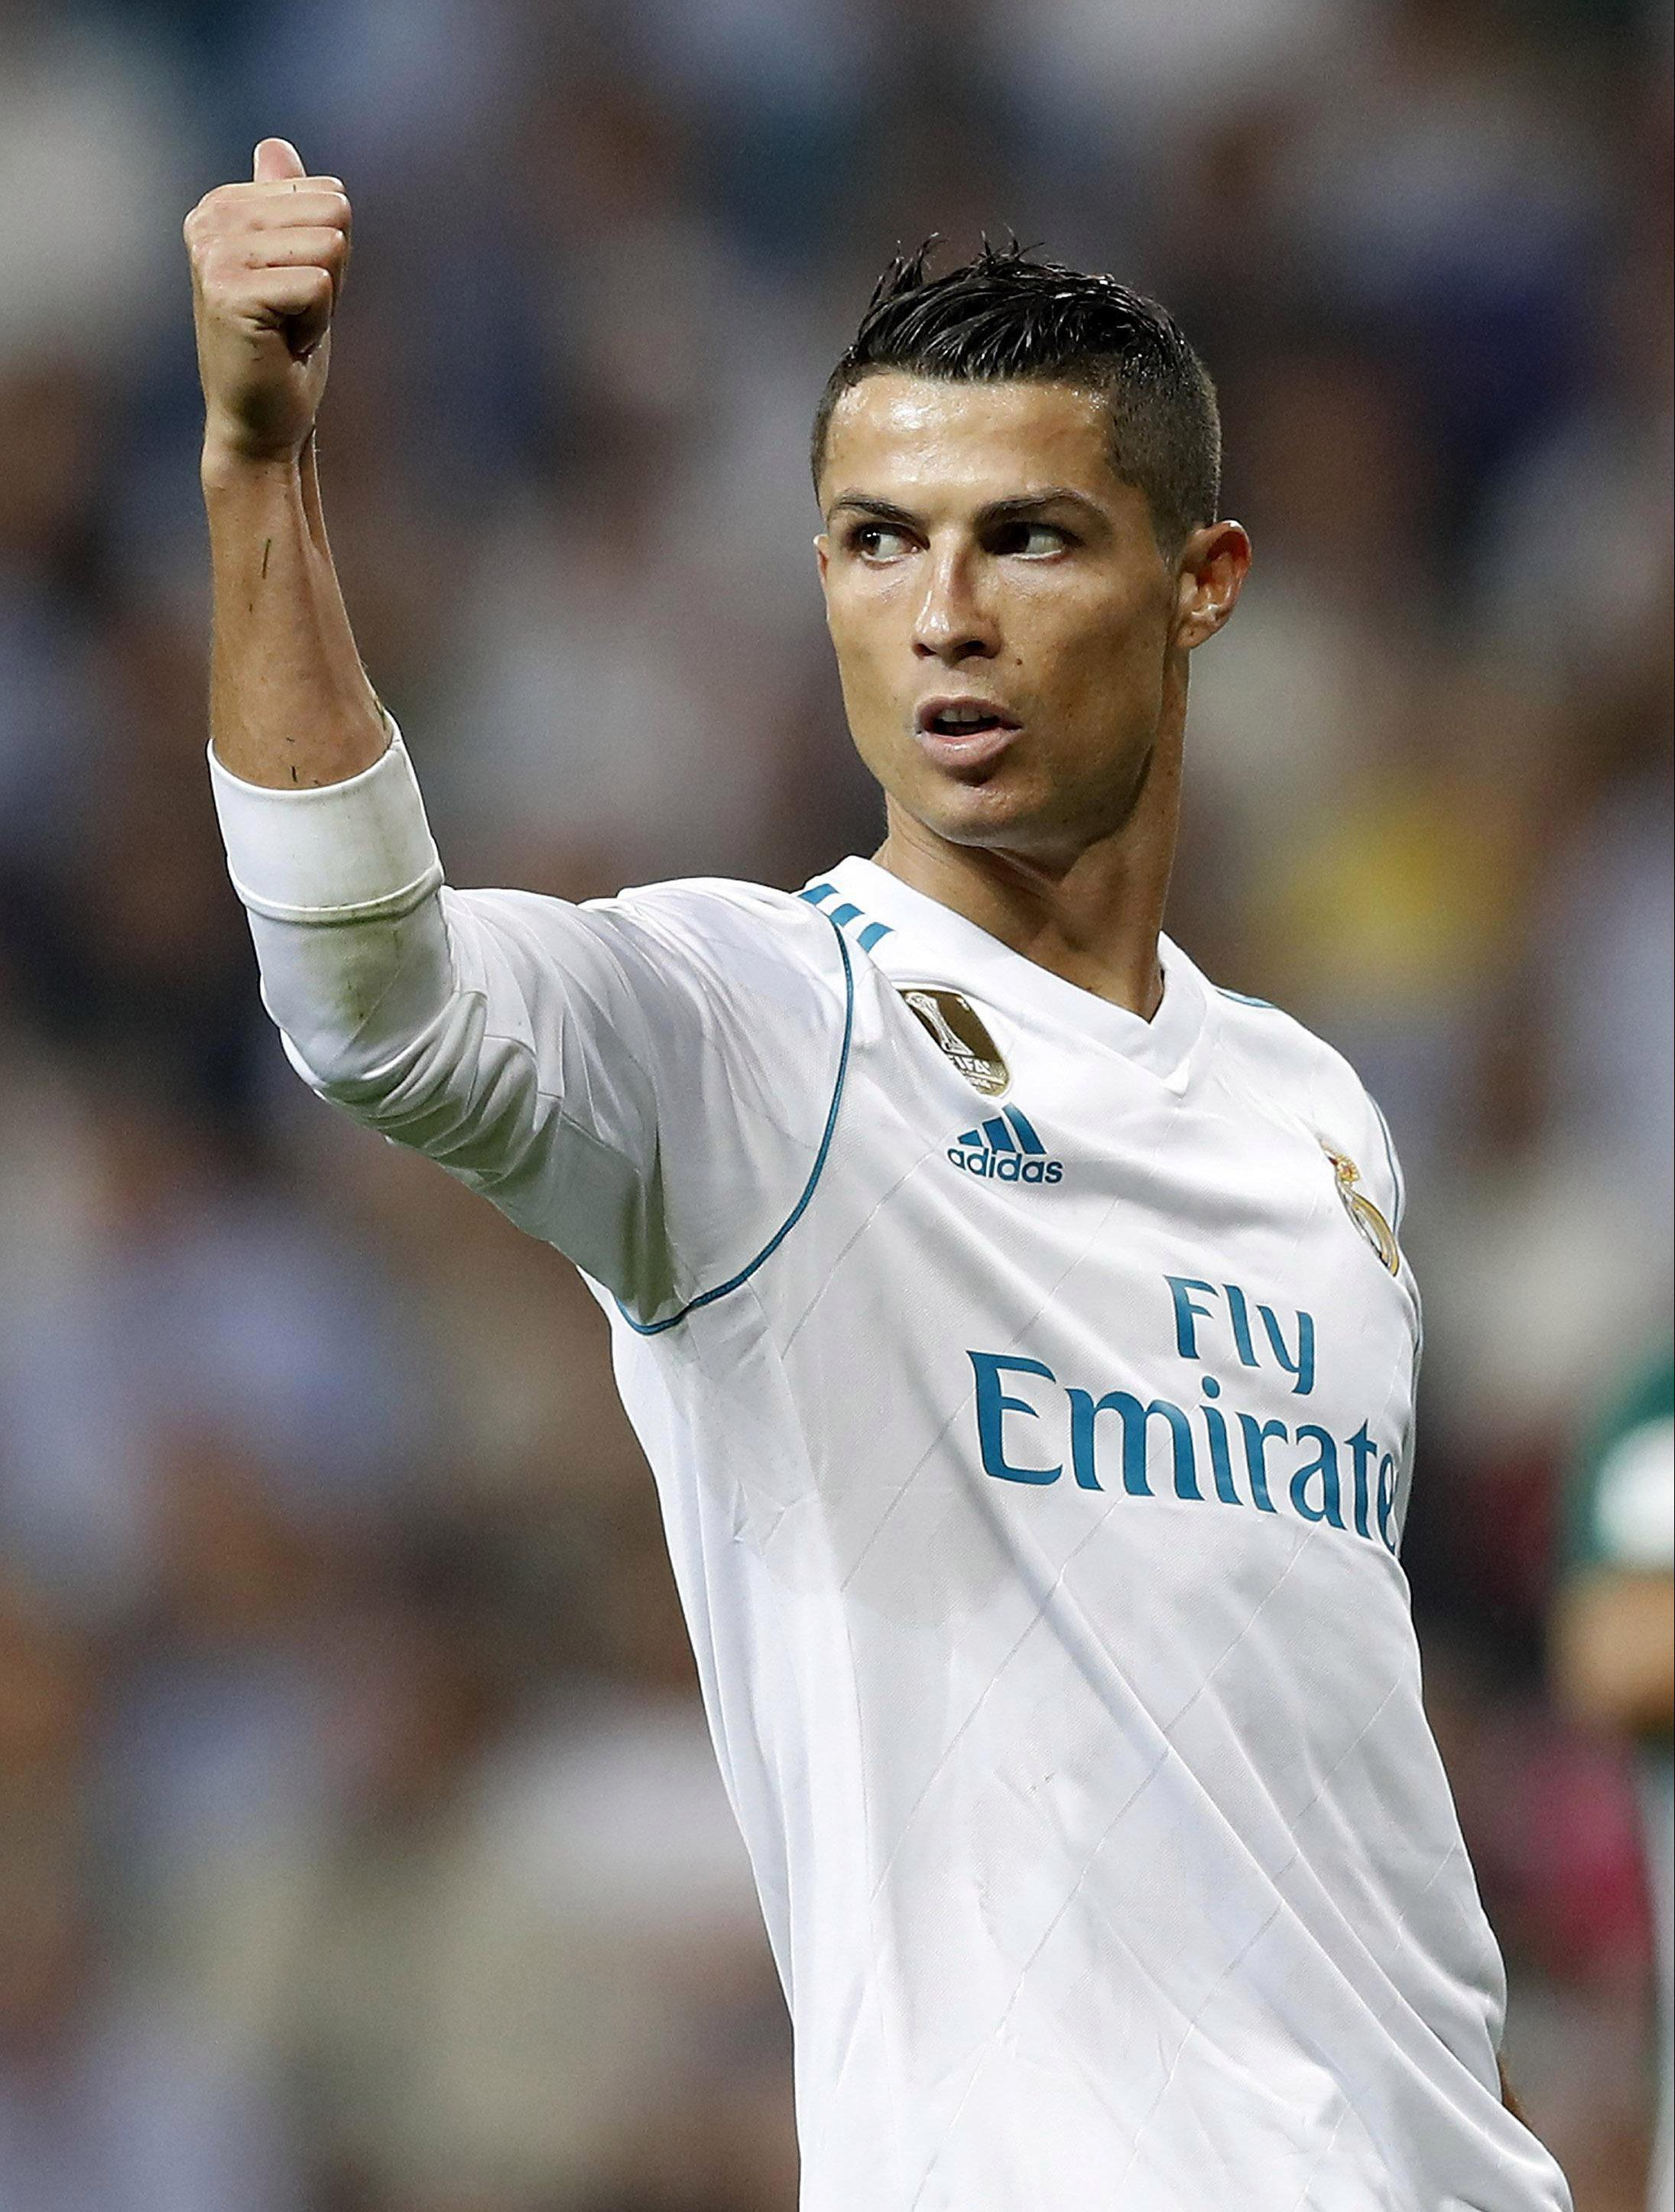 """Cristiano Ronaldo has revealed he has """"Dream of a child"""" printed on all his boots"""